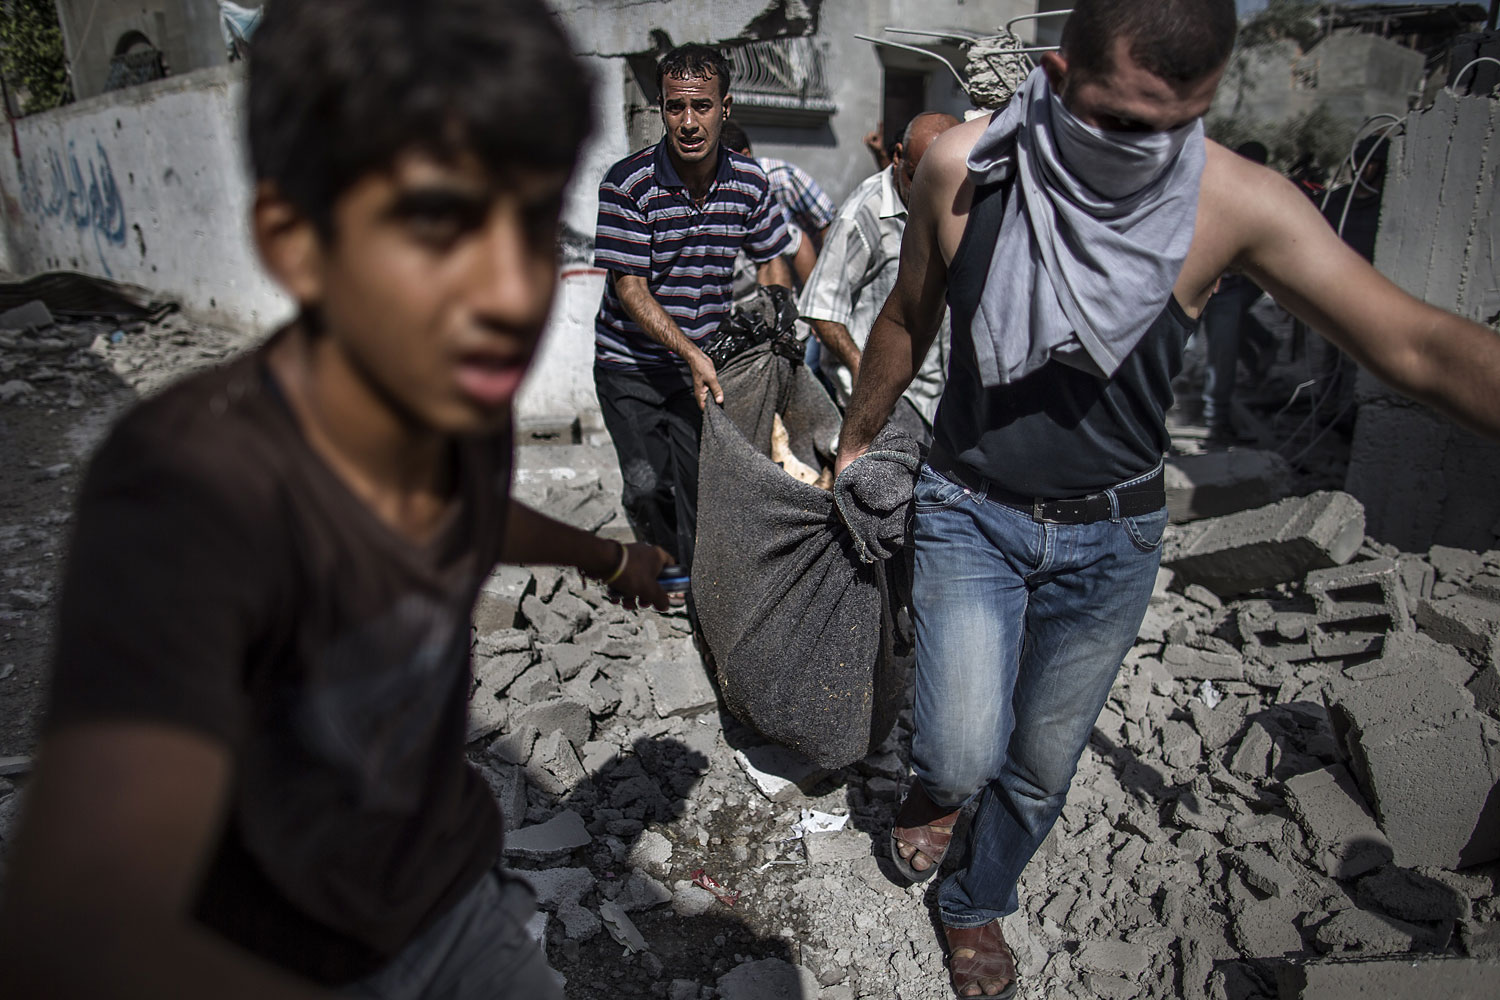 Palestinians recover the body of a man killed when his home was hit the previous night by Israeli fire in the northern district of Beit Hanoun in the Gaza Strip during an humanitarian truce, on July 26, 2014.